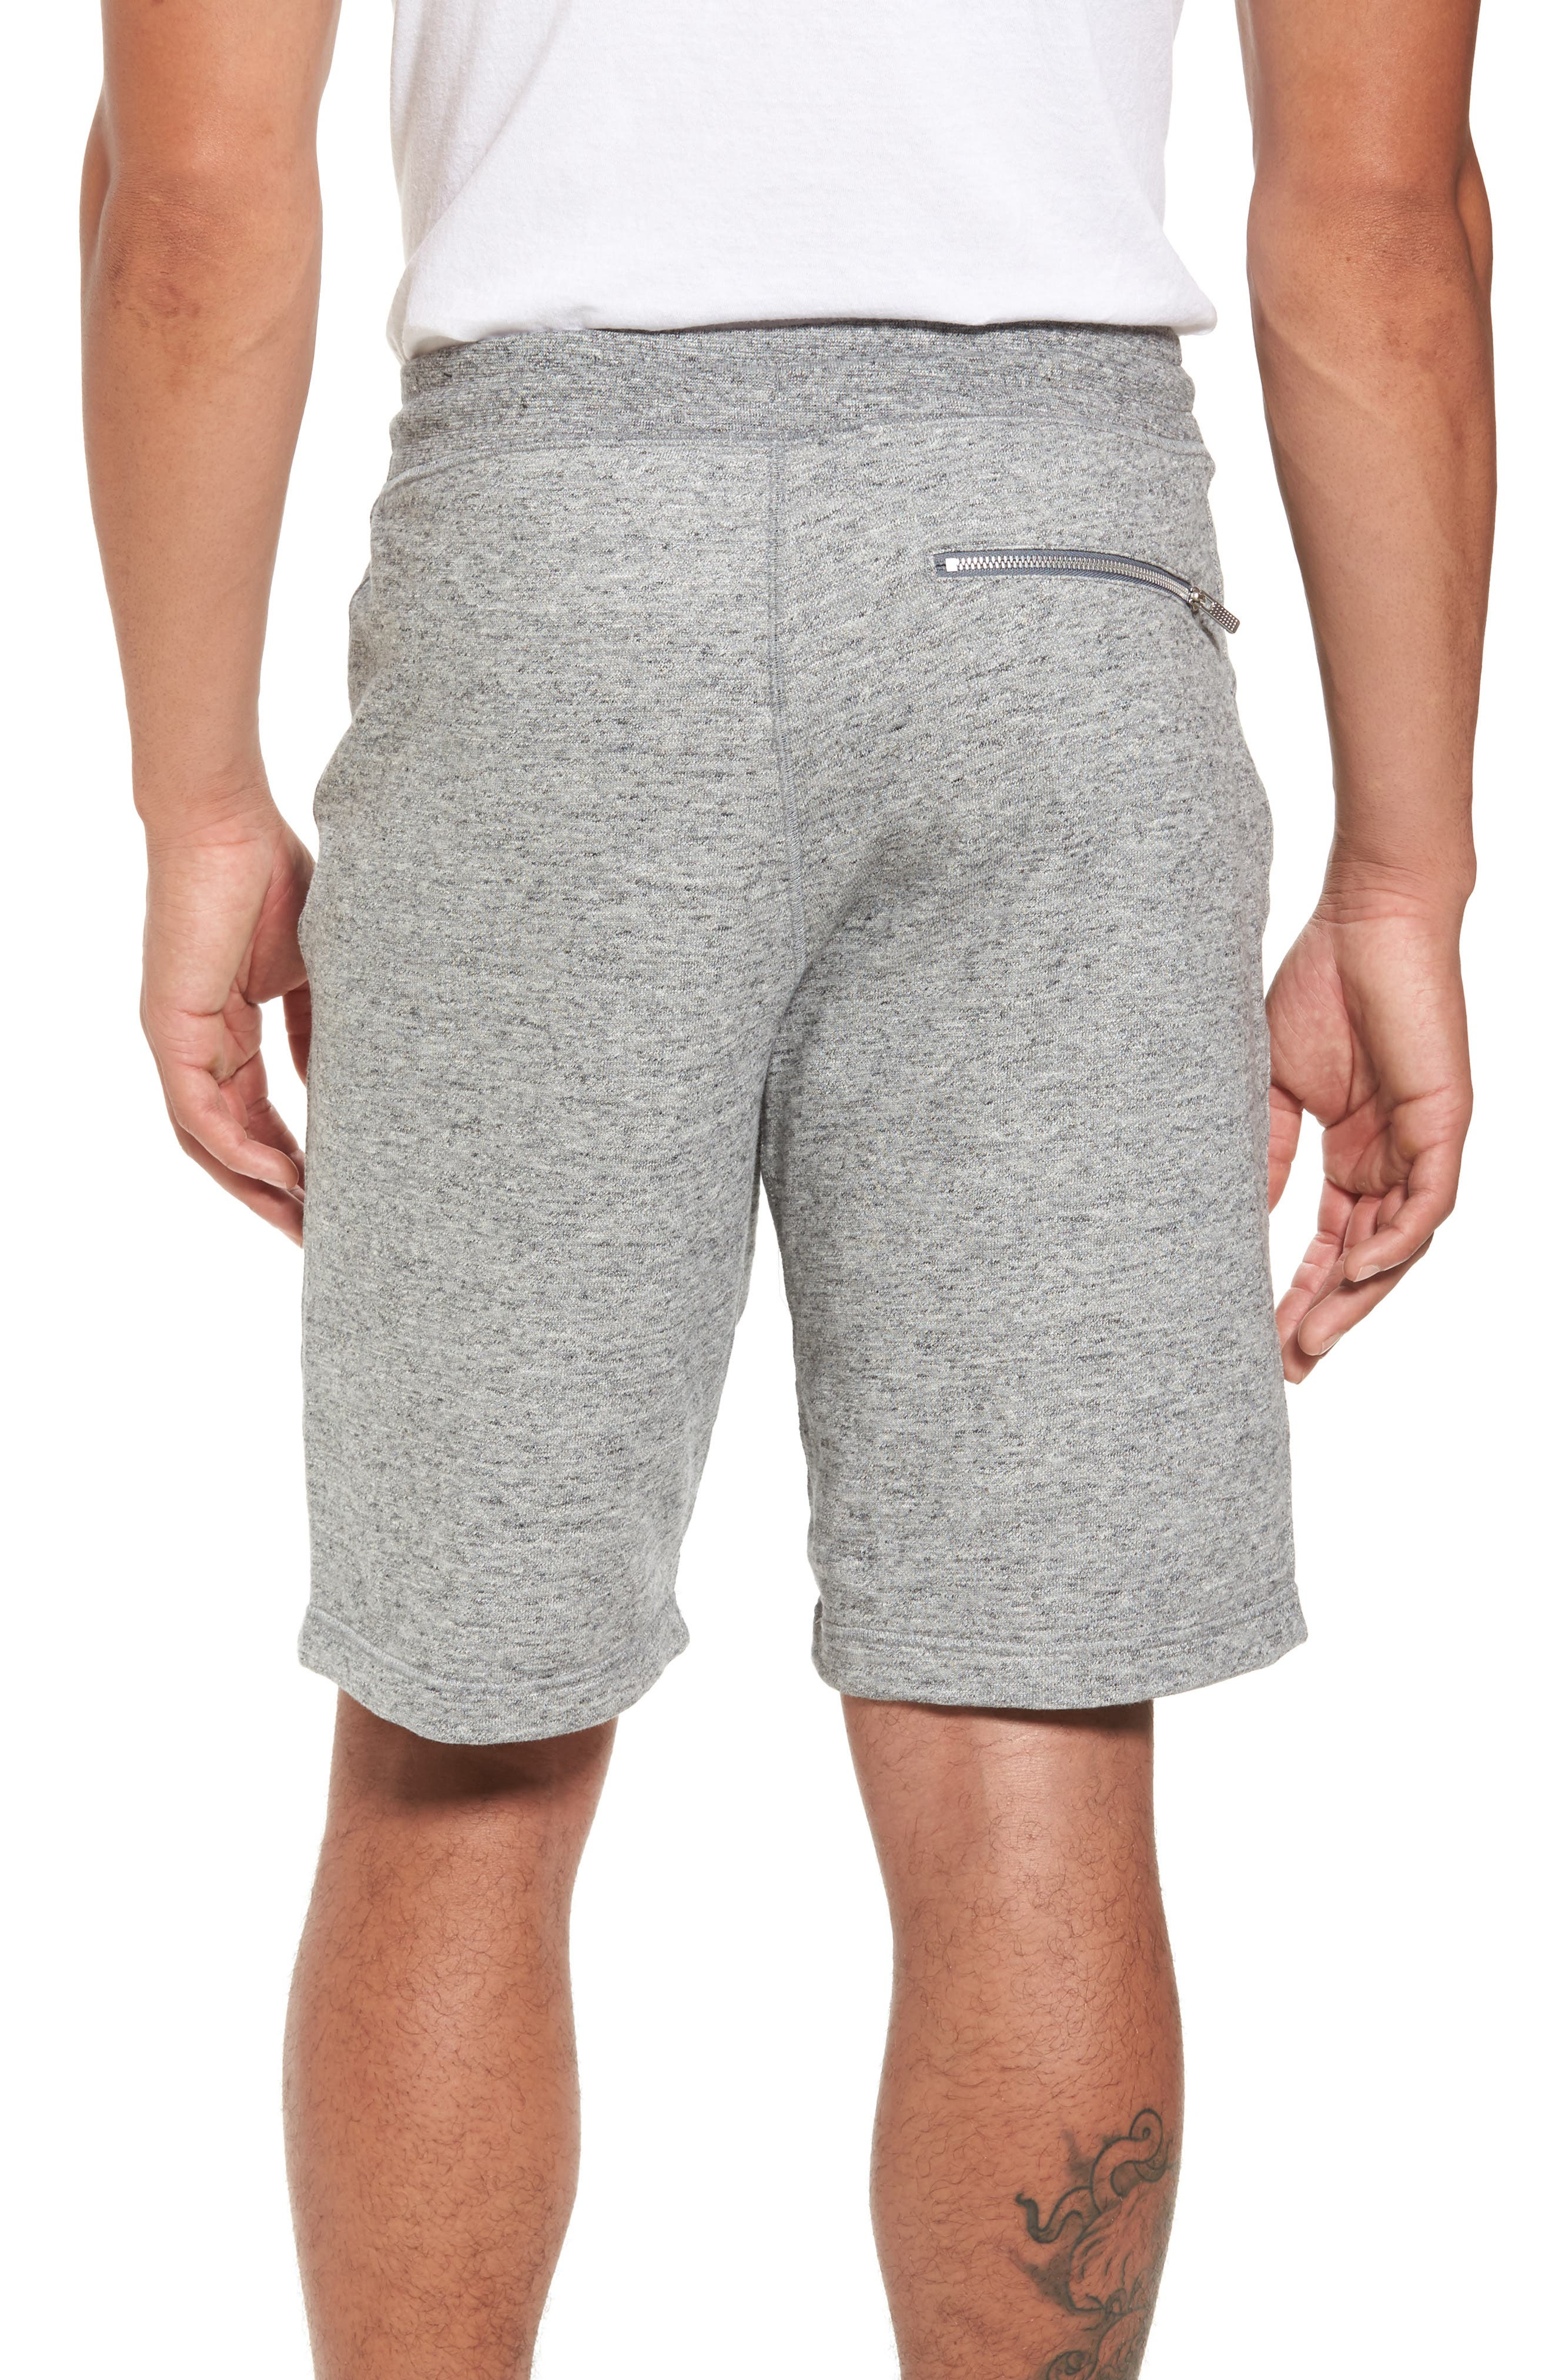 Legacy Knit Shorts,                             Alternate thumbnail 2, color,                             Carbon Heather/ Sail